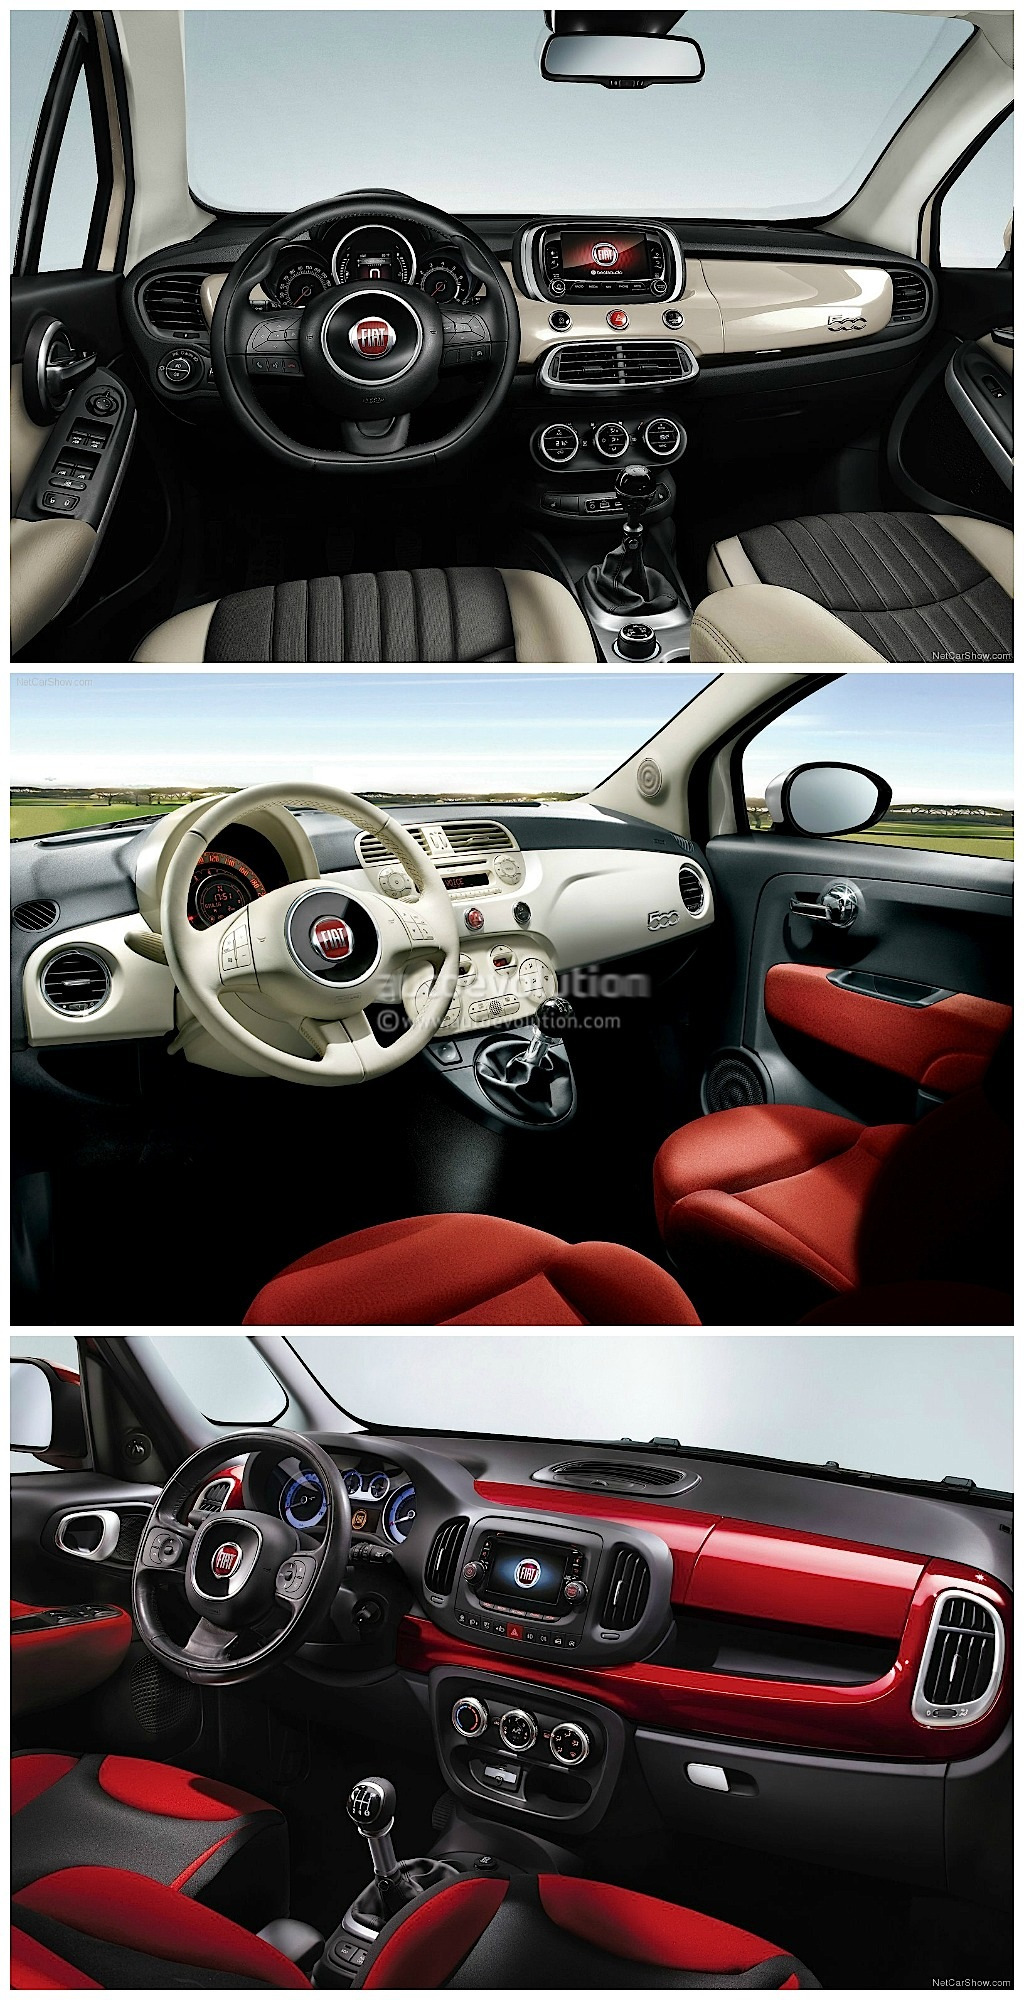 fiat speed top chicane interior cars